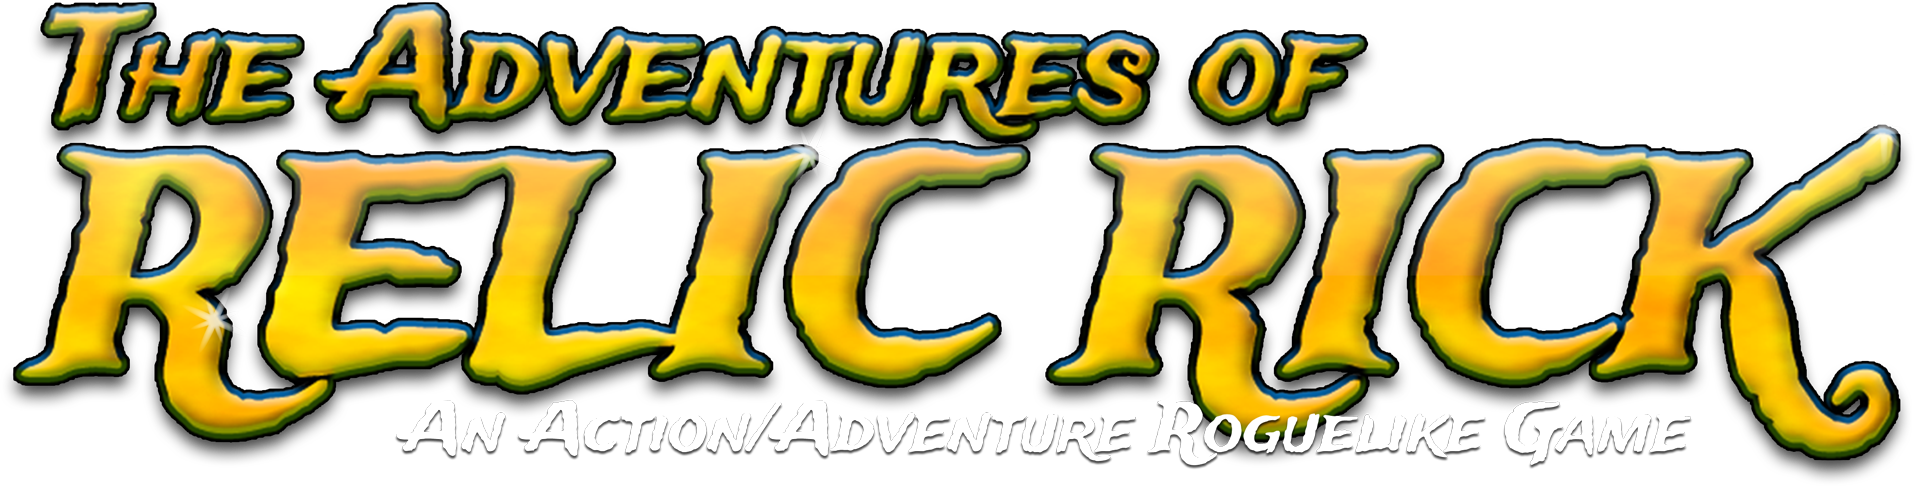 The Adventures of Relic Rick: An Action/Adventure Roguelike Game By Toxin Games